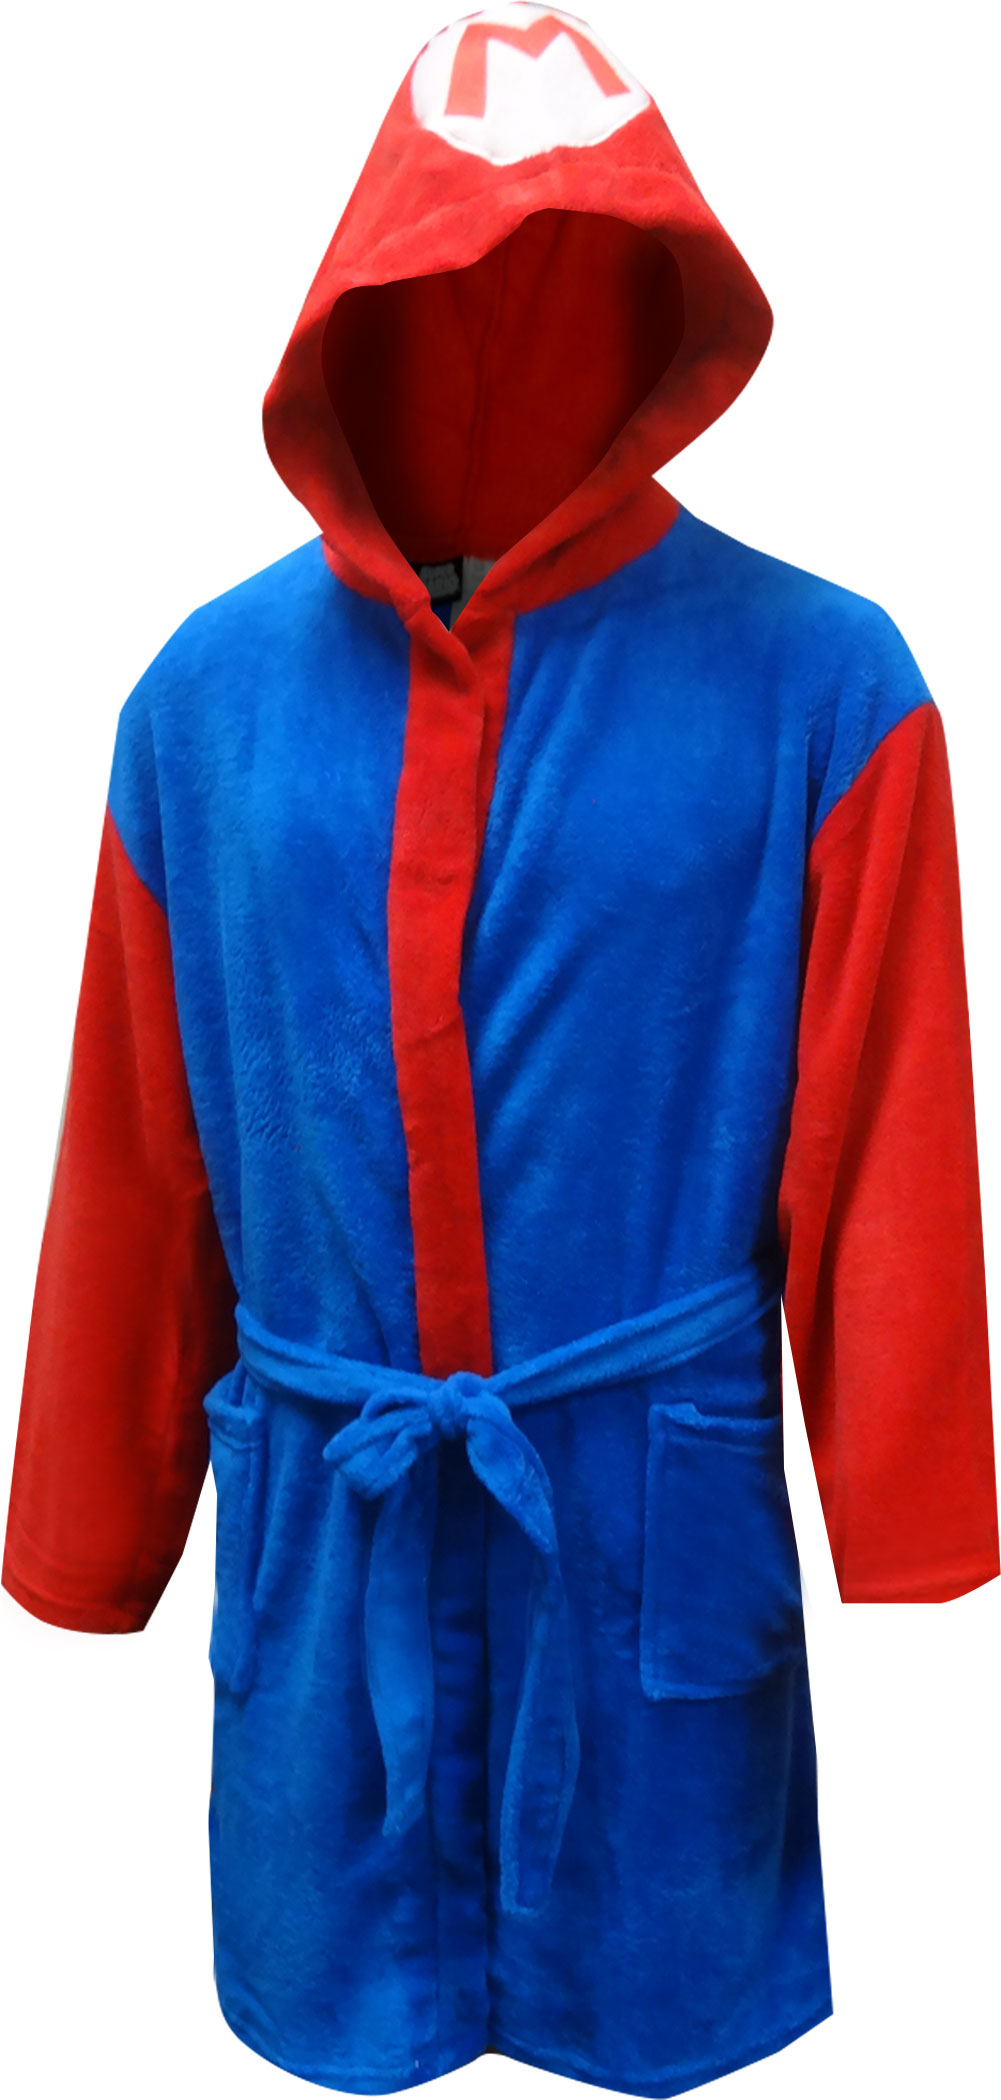 Image of Nintendo Super Mario Plush Adult Robe for men